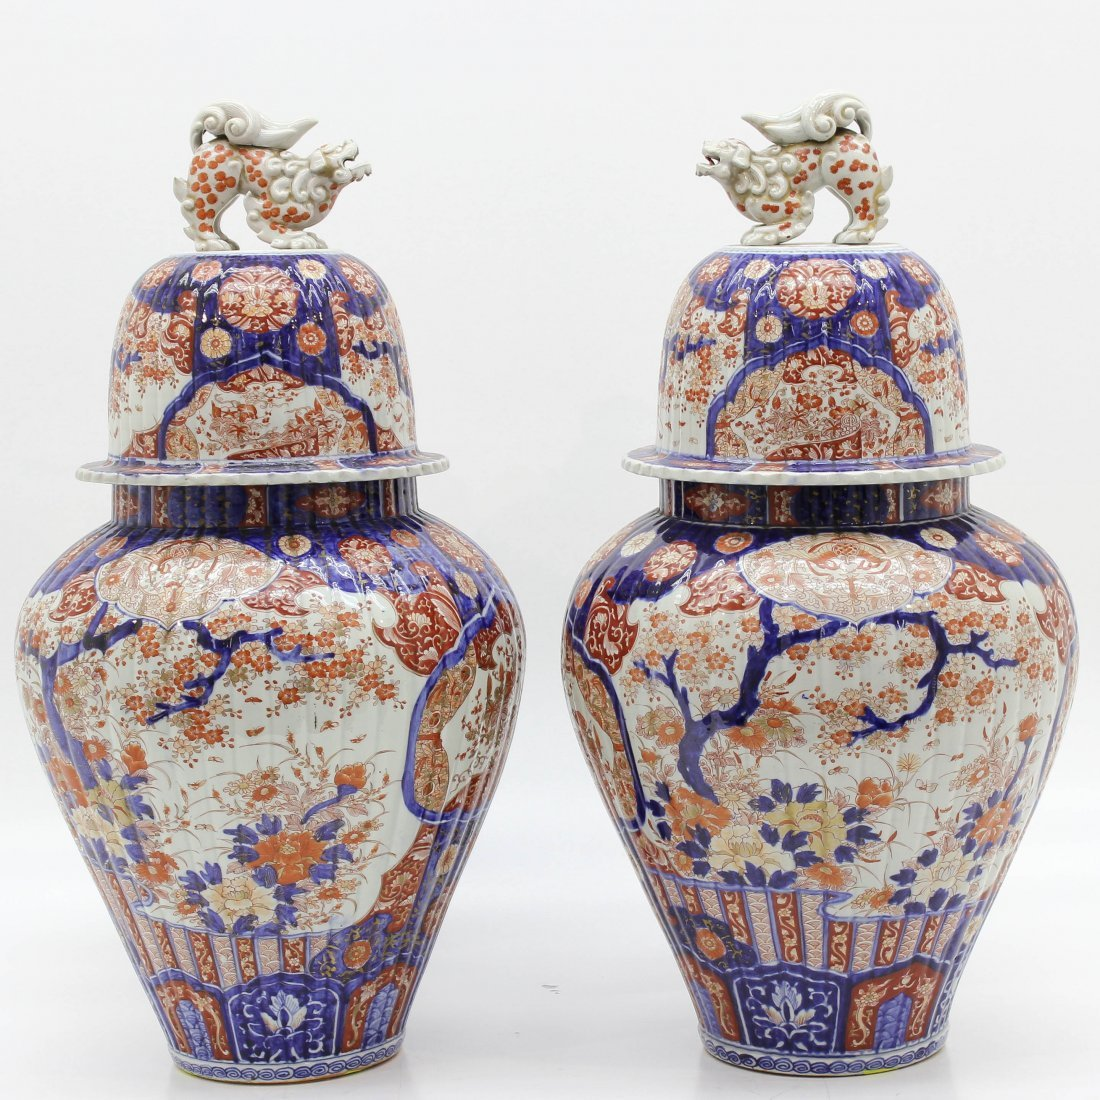 2 Rare 19th Century Japanese Lidded Baluster Vases